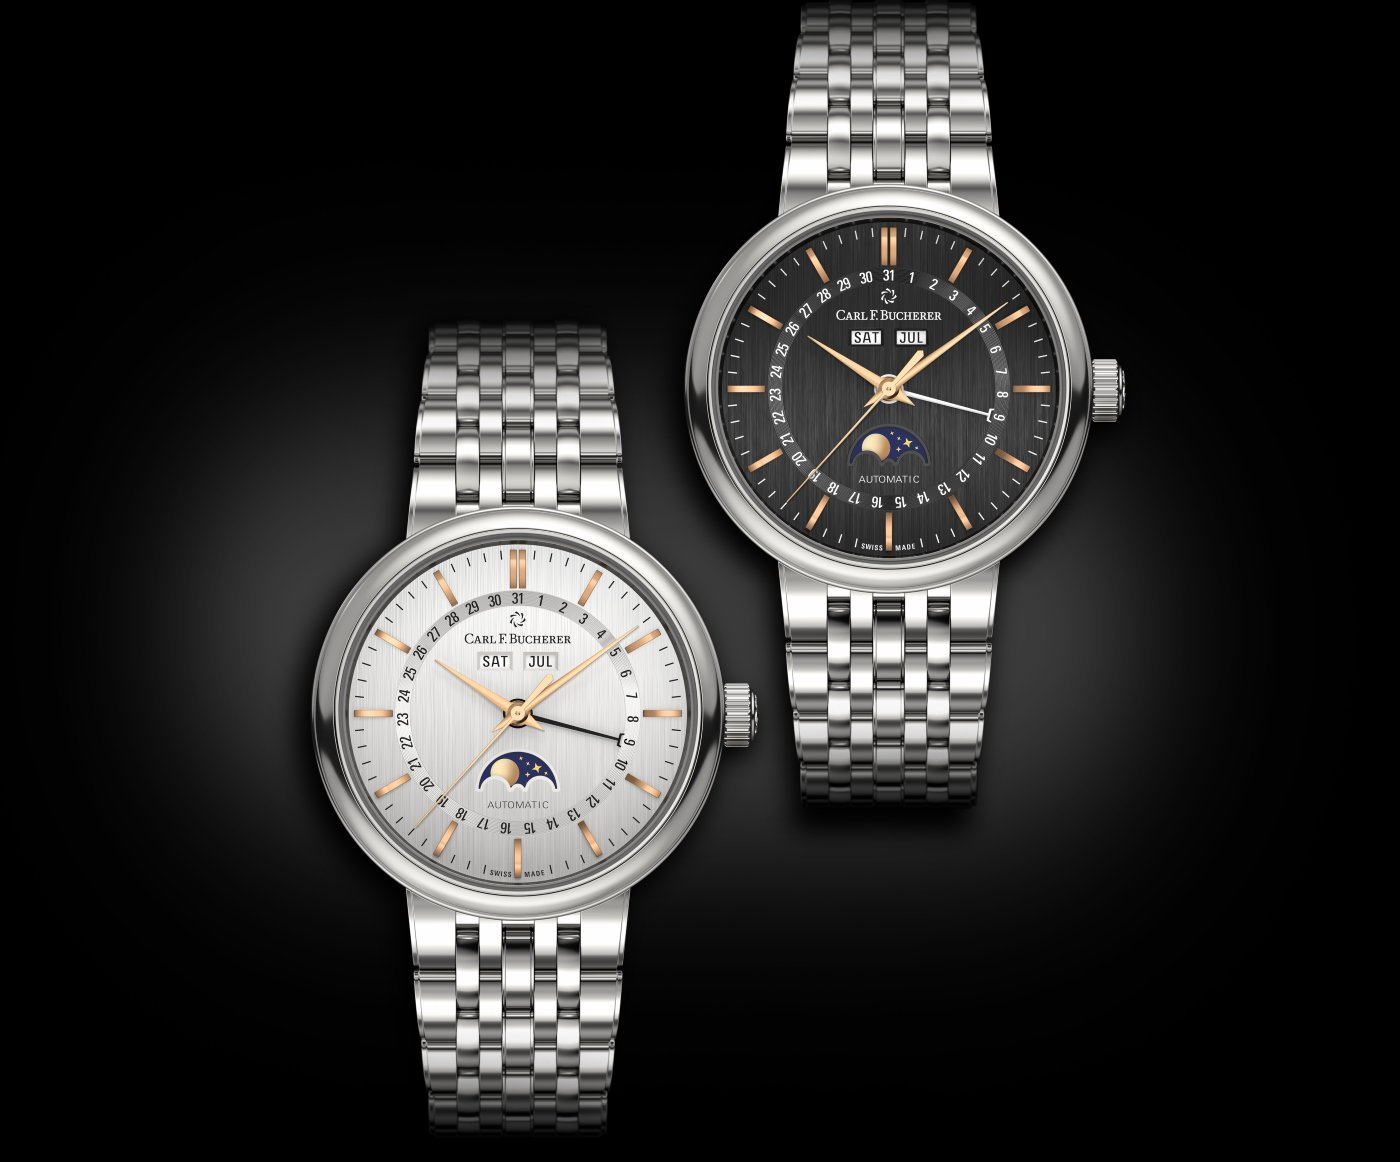 carl_f_bucherer_the_new_adamavi_fullcalendar_steel-_europa_star_magazine_2021